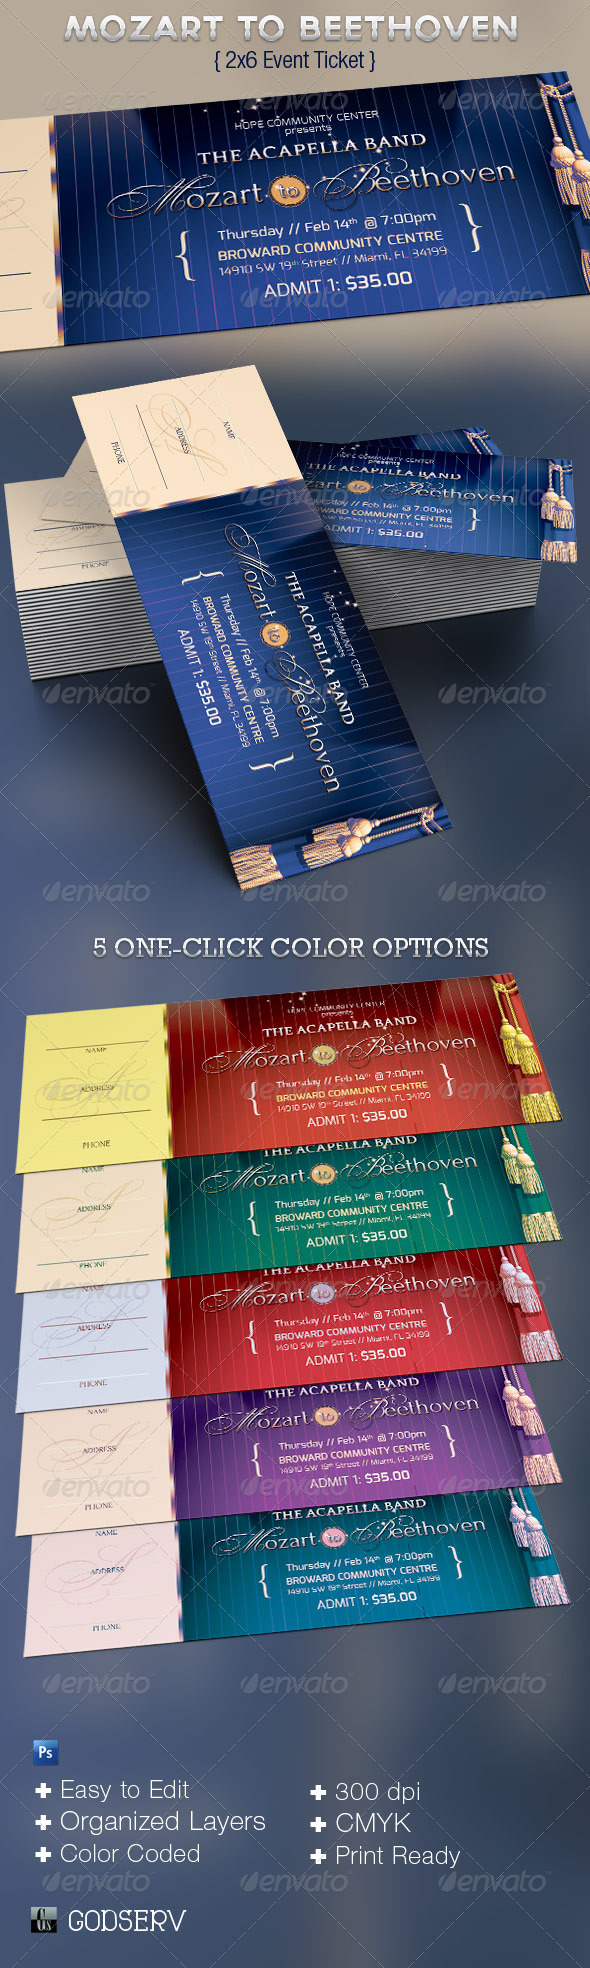 GraphicRiver Mozart to Beethoven Event Ticket Template 3759782